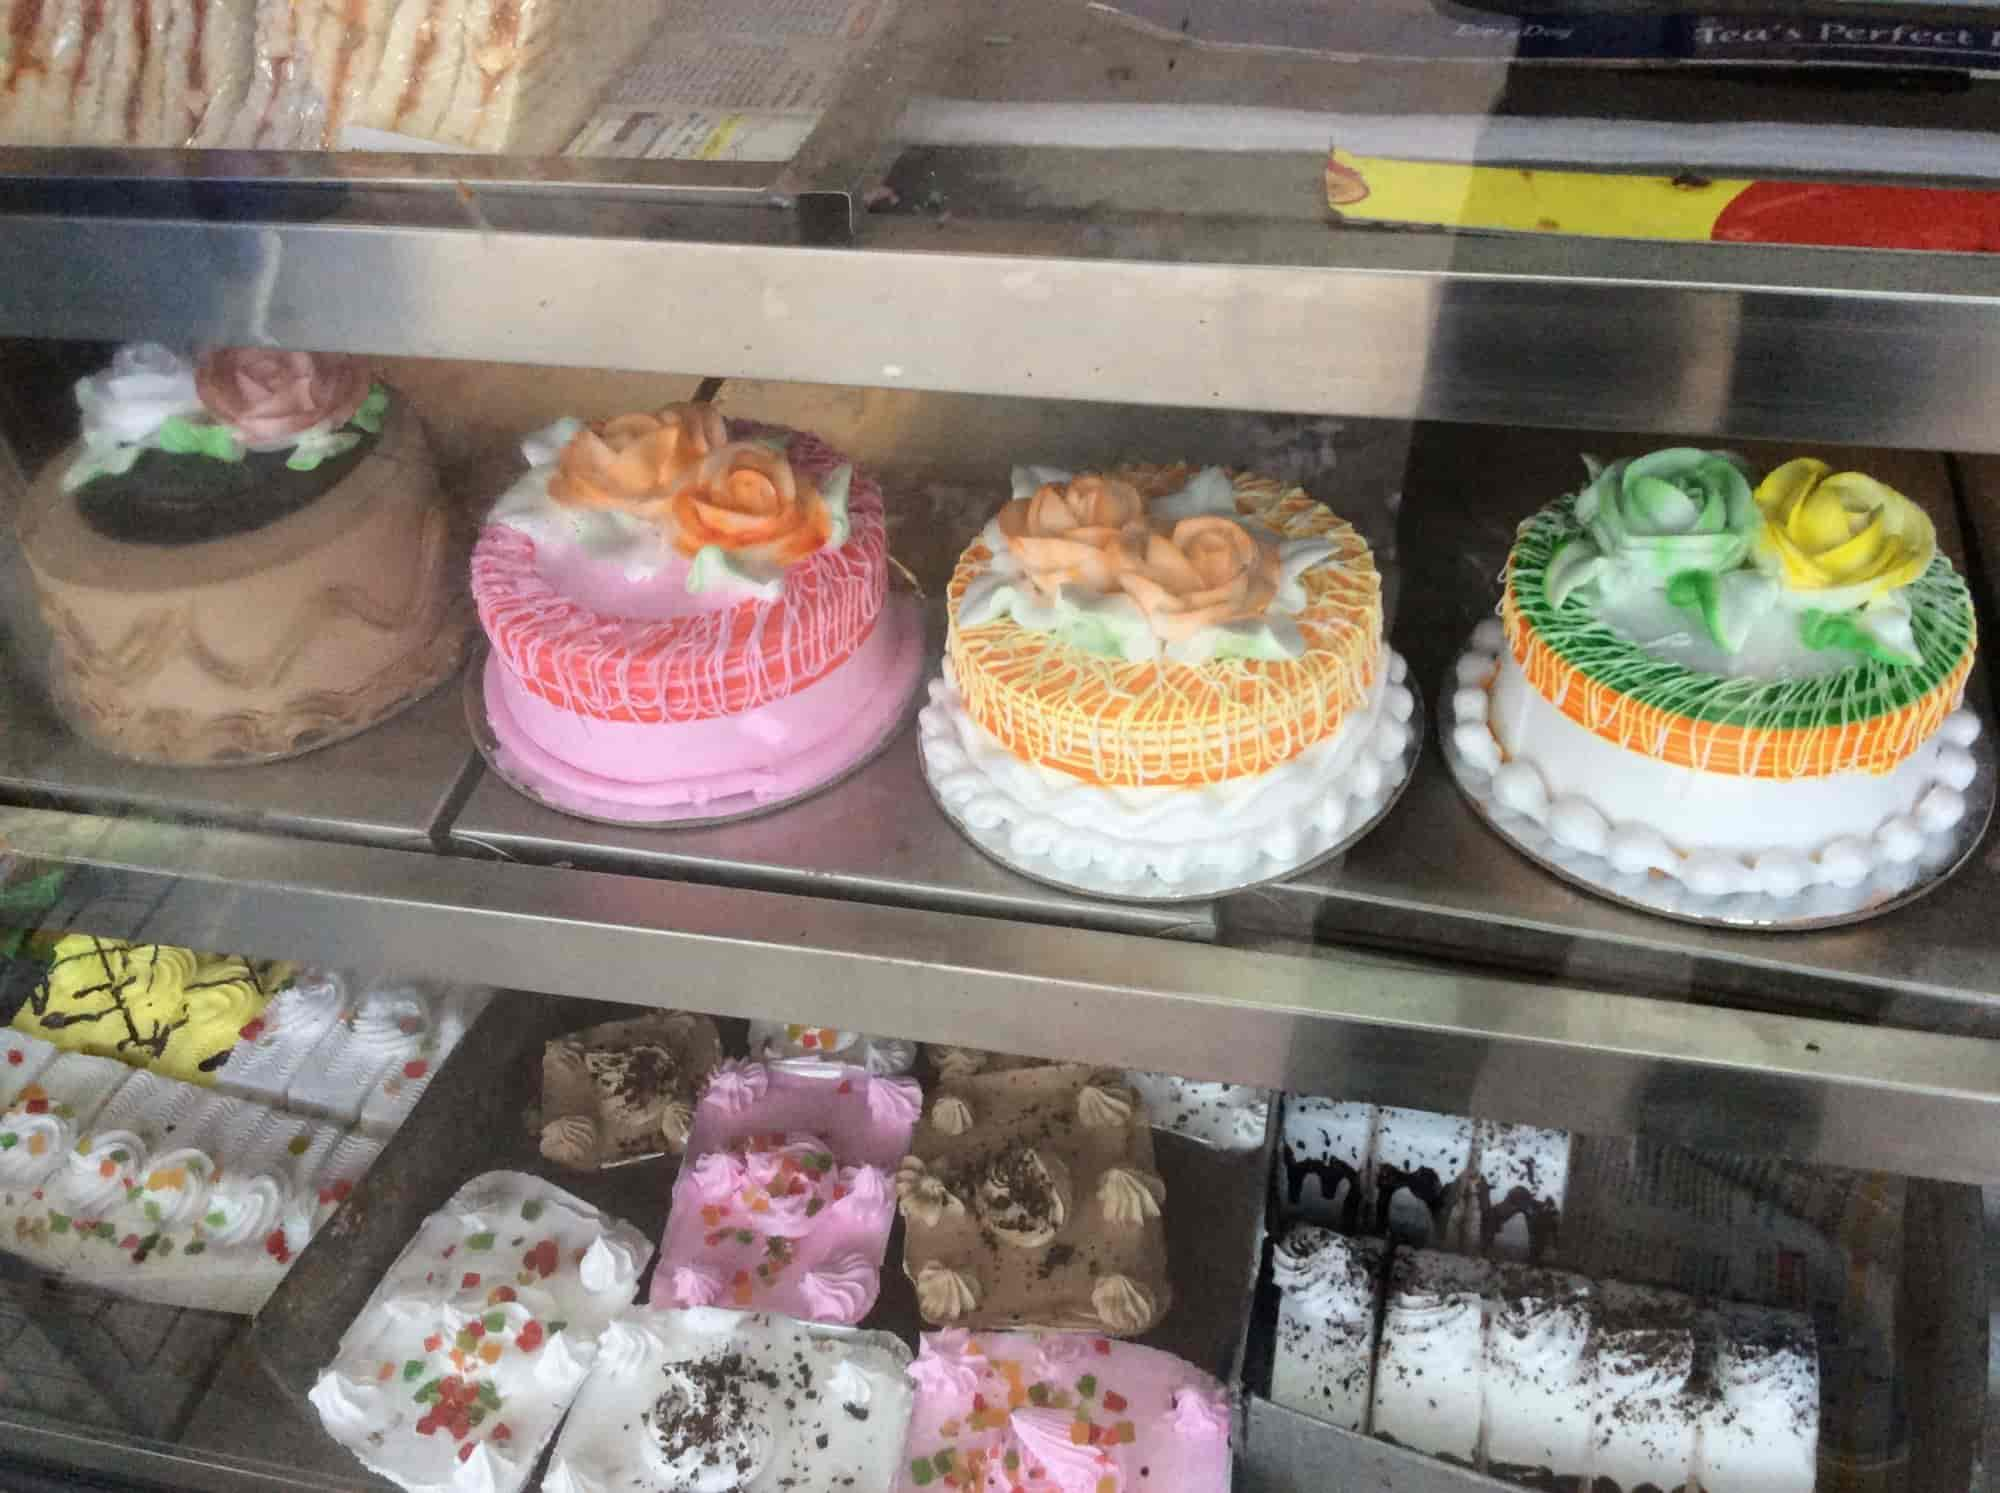 engineer bakery shop photos sitapura jaipur pictures images